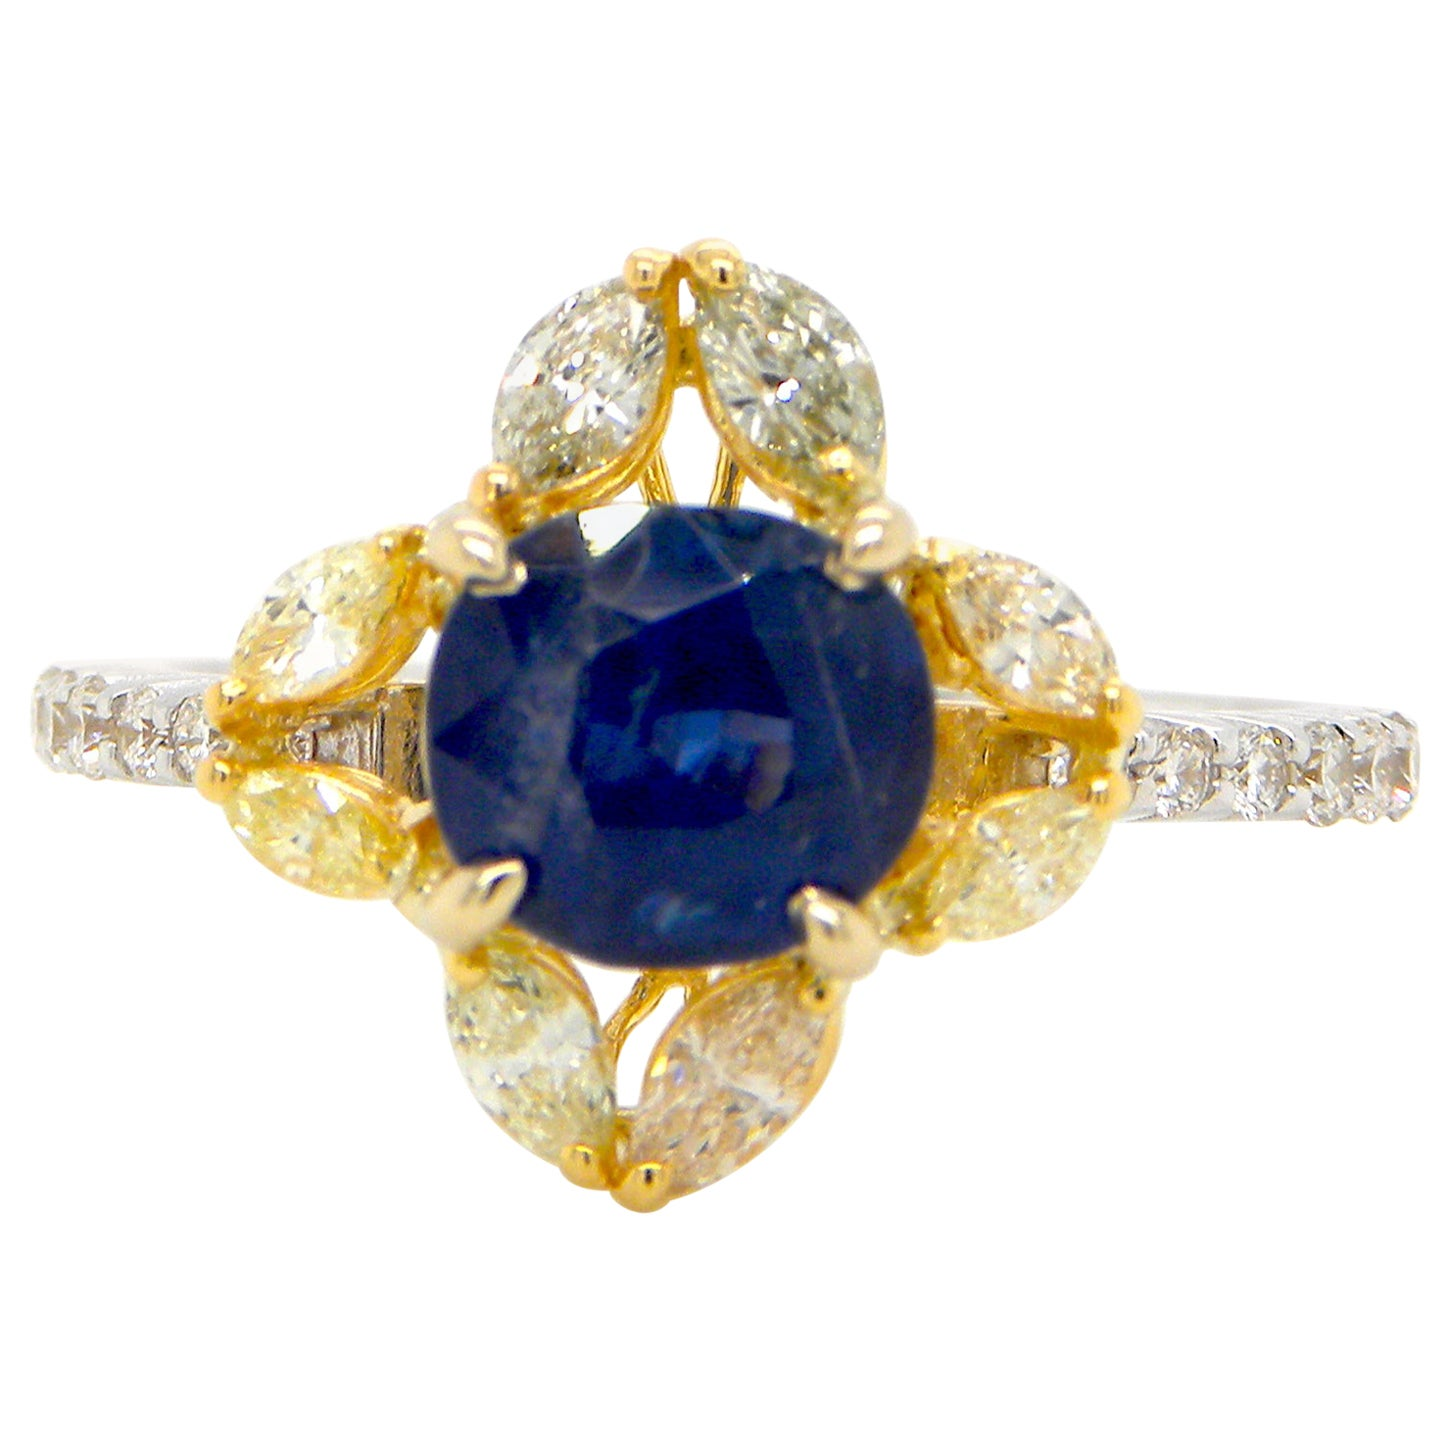 1.65 Carat Unheated Burmese Blue Sapphire and Diamond Gold Engagement Ring